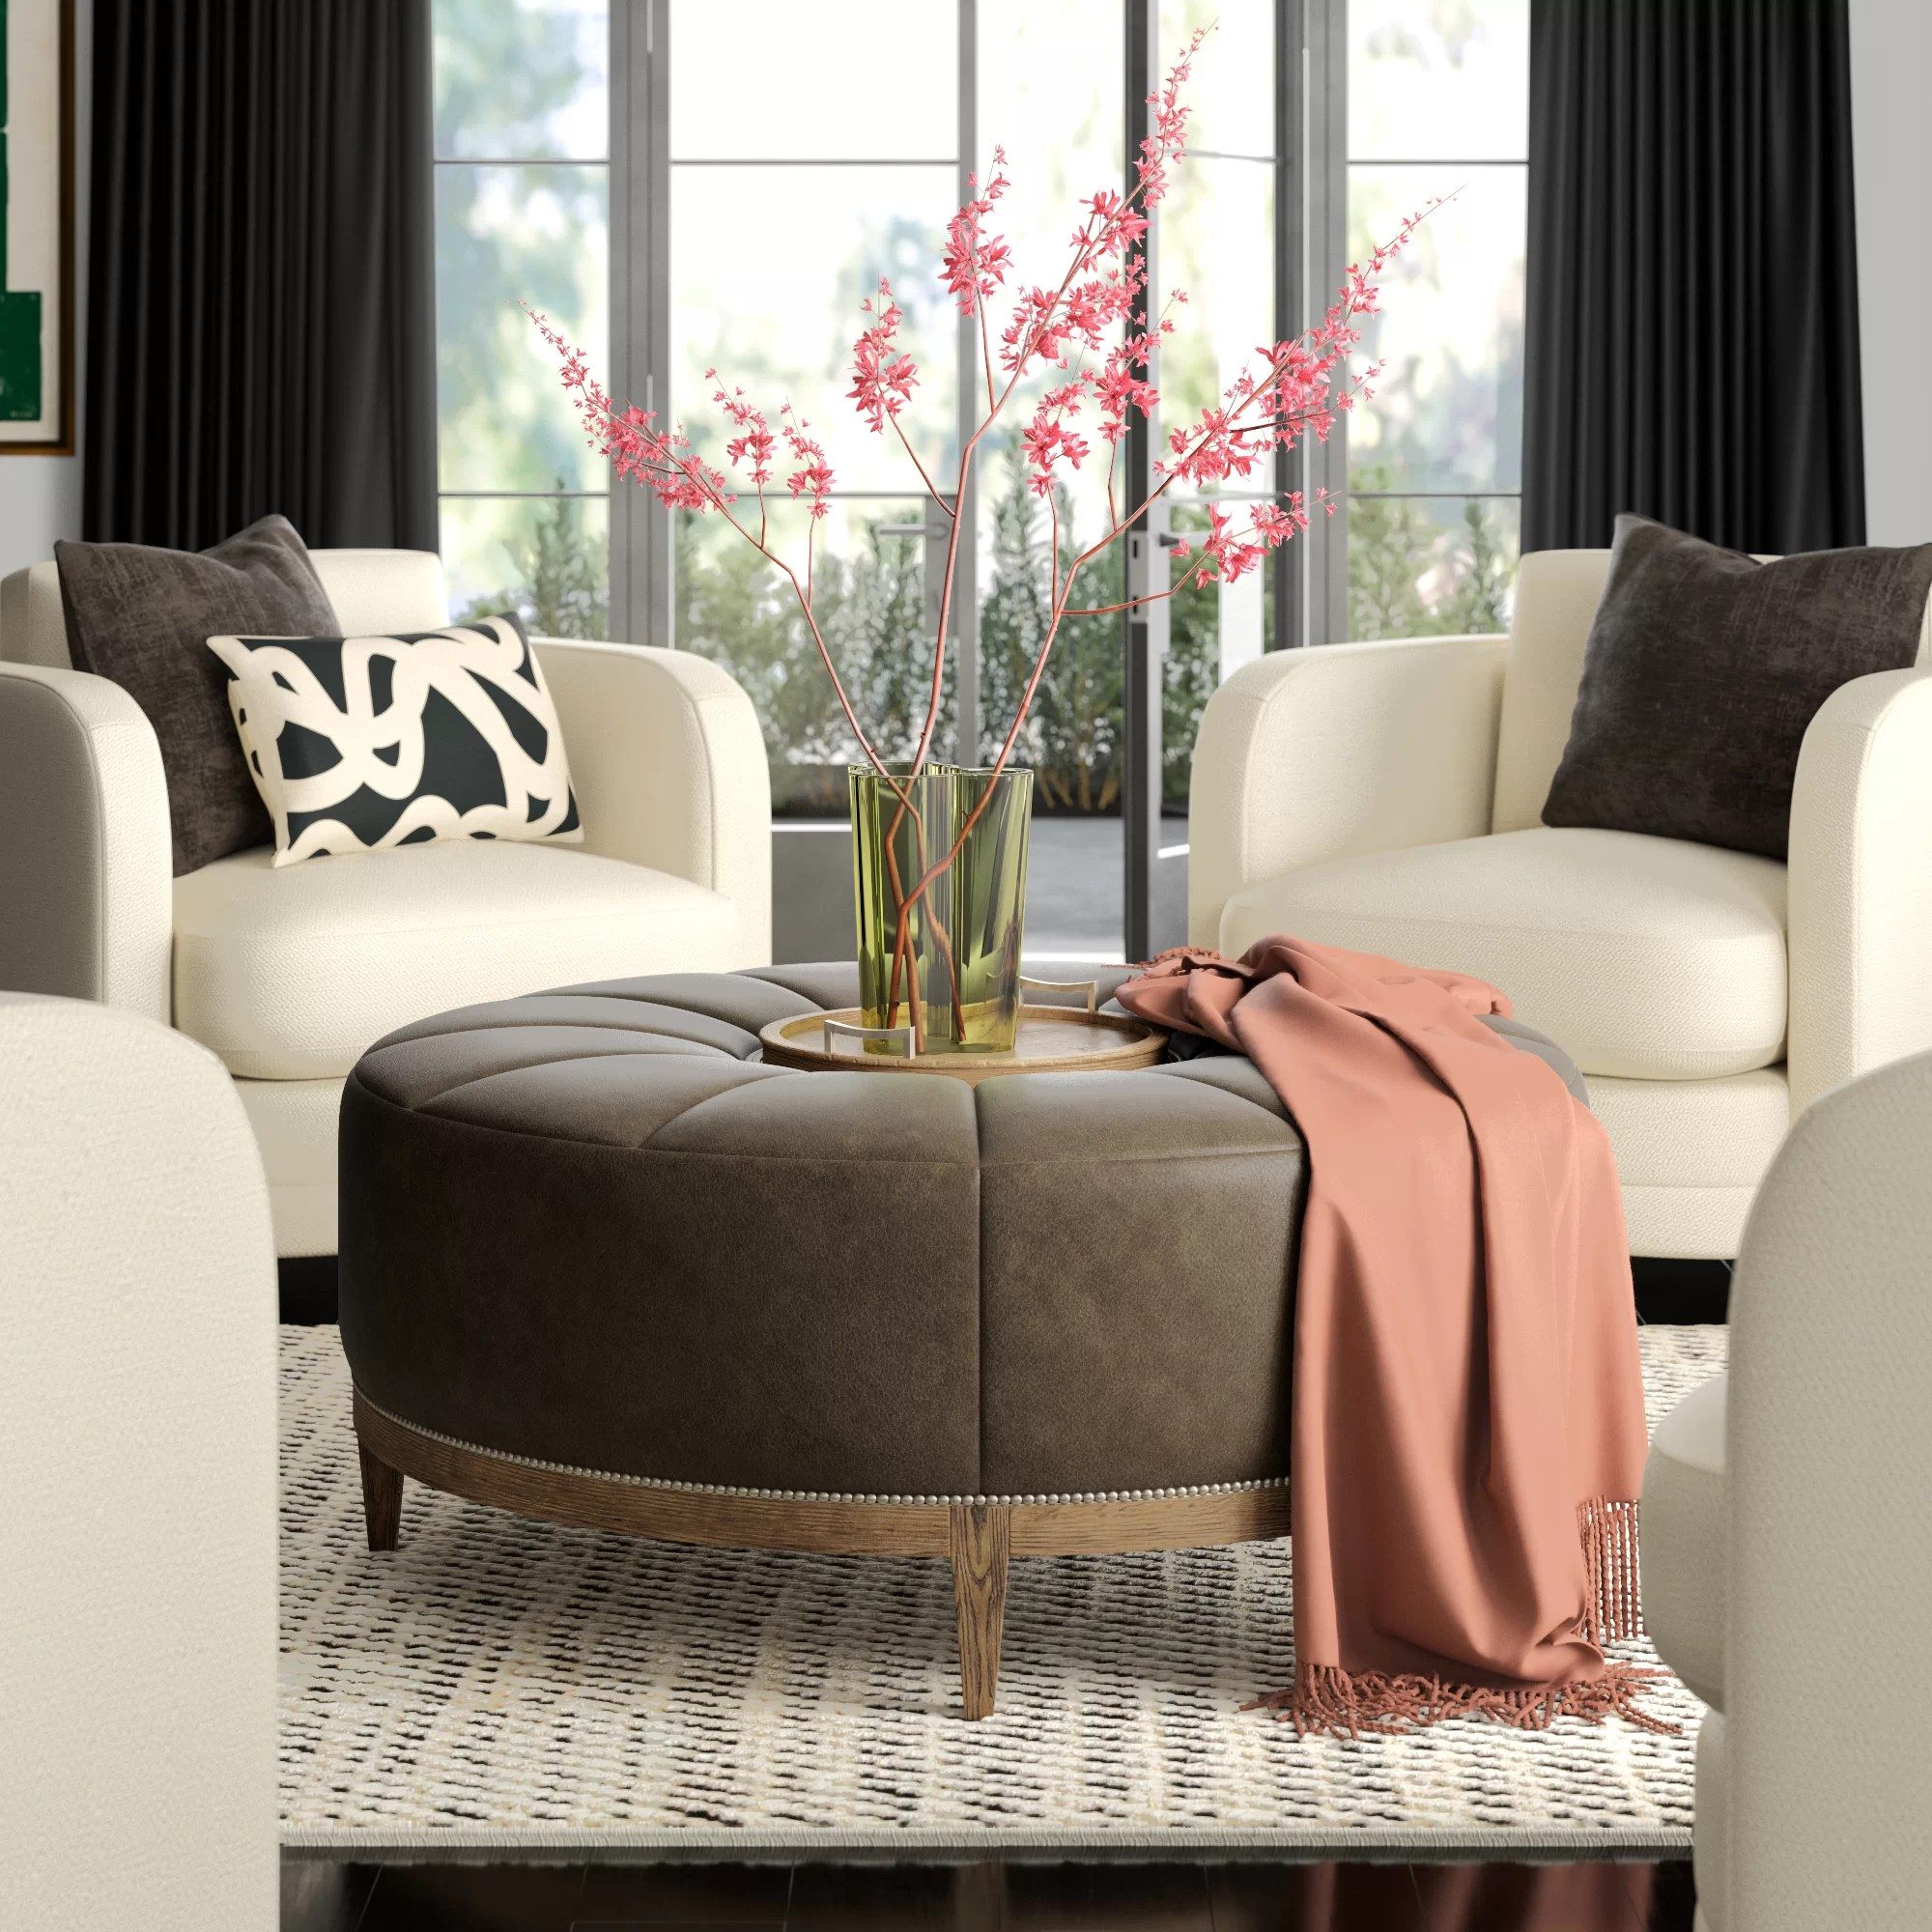 chasen 45 5 genuine leather tufted round cocktail ottoman